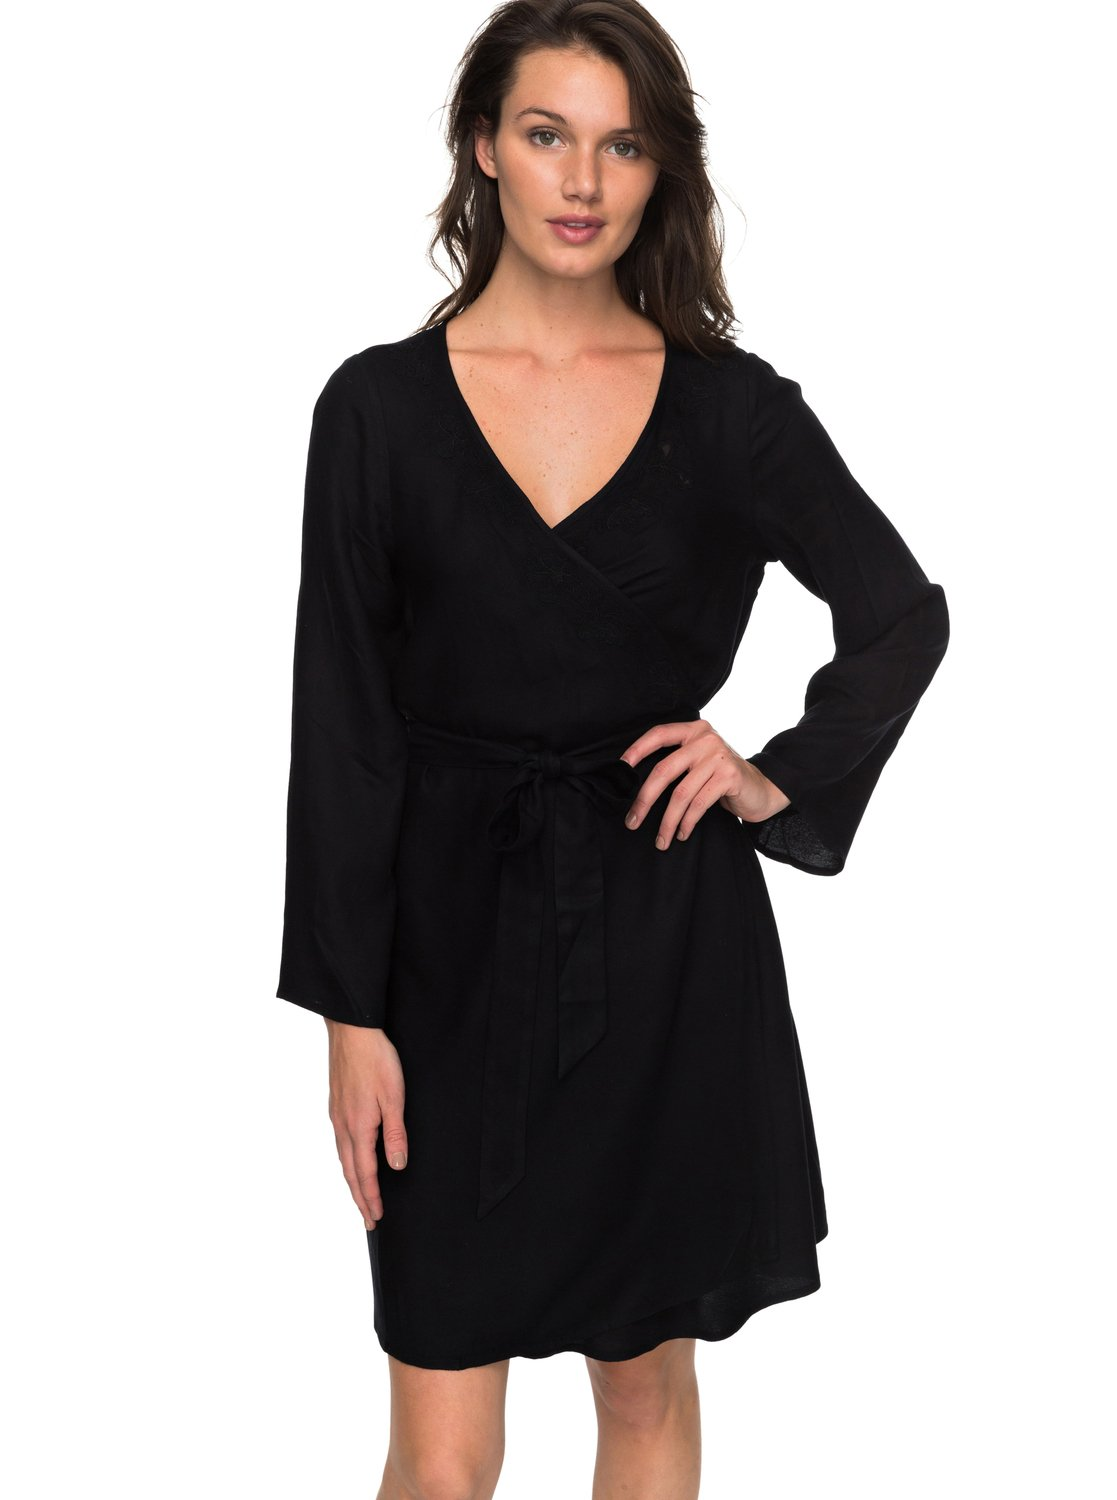 Small Hours - Robe portefeuille pour Femme - Roxy